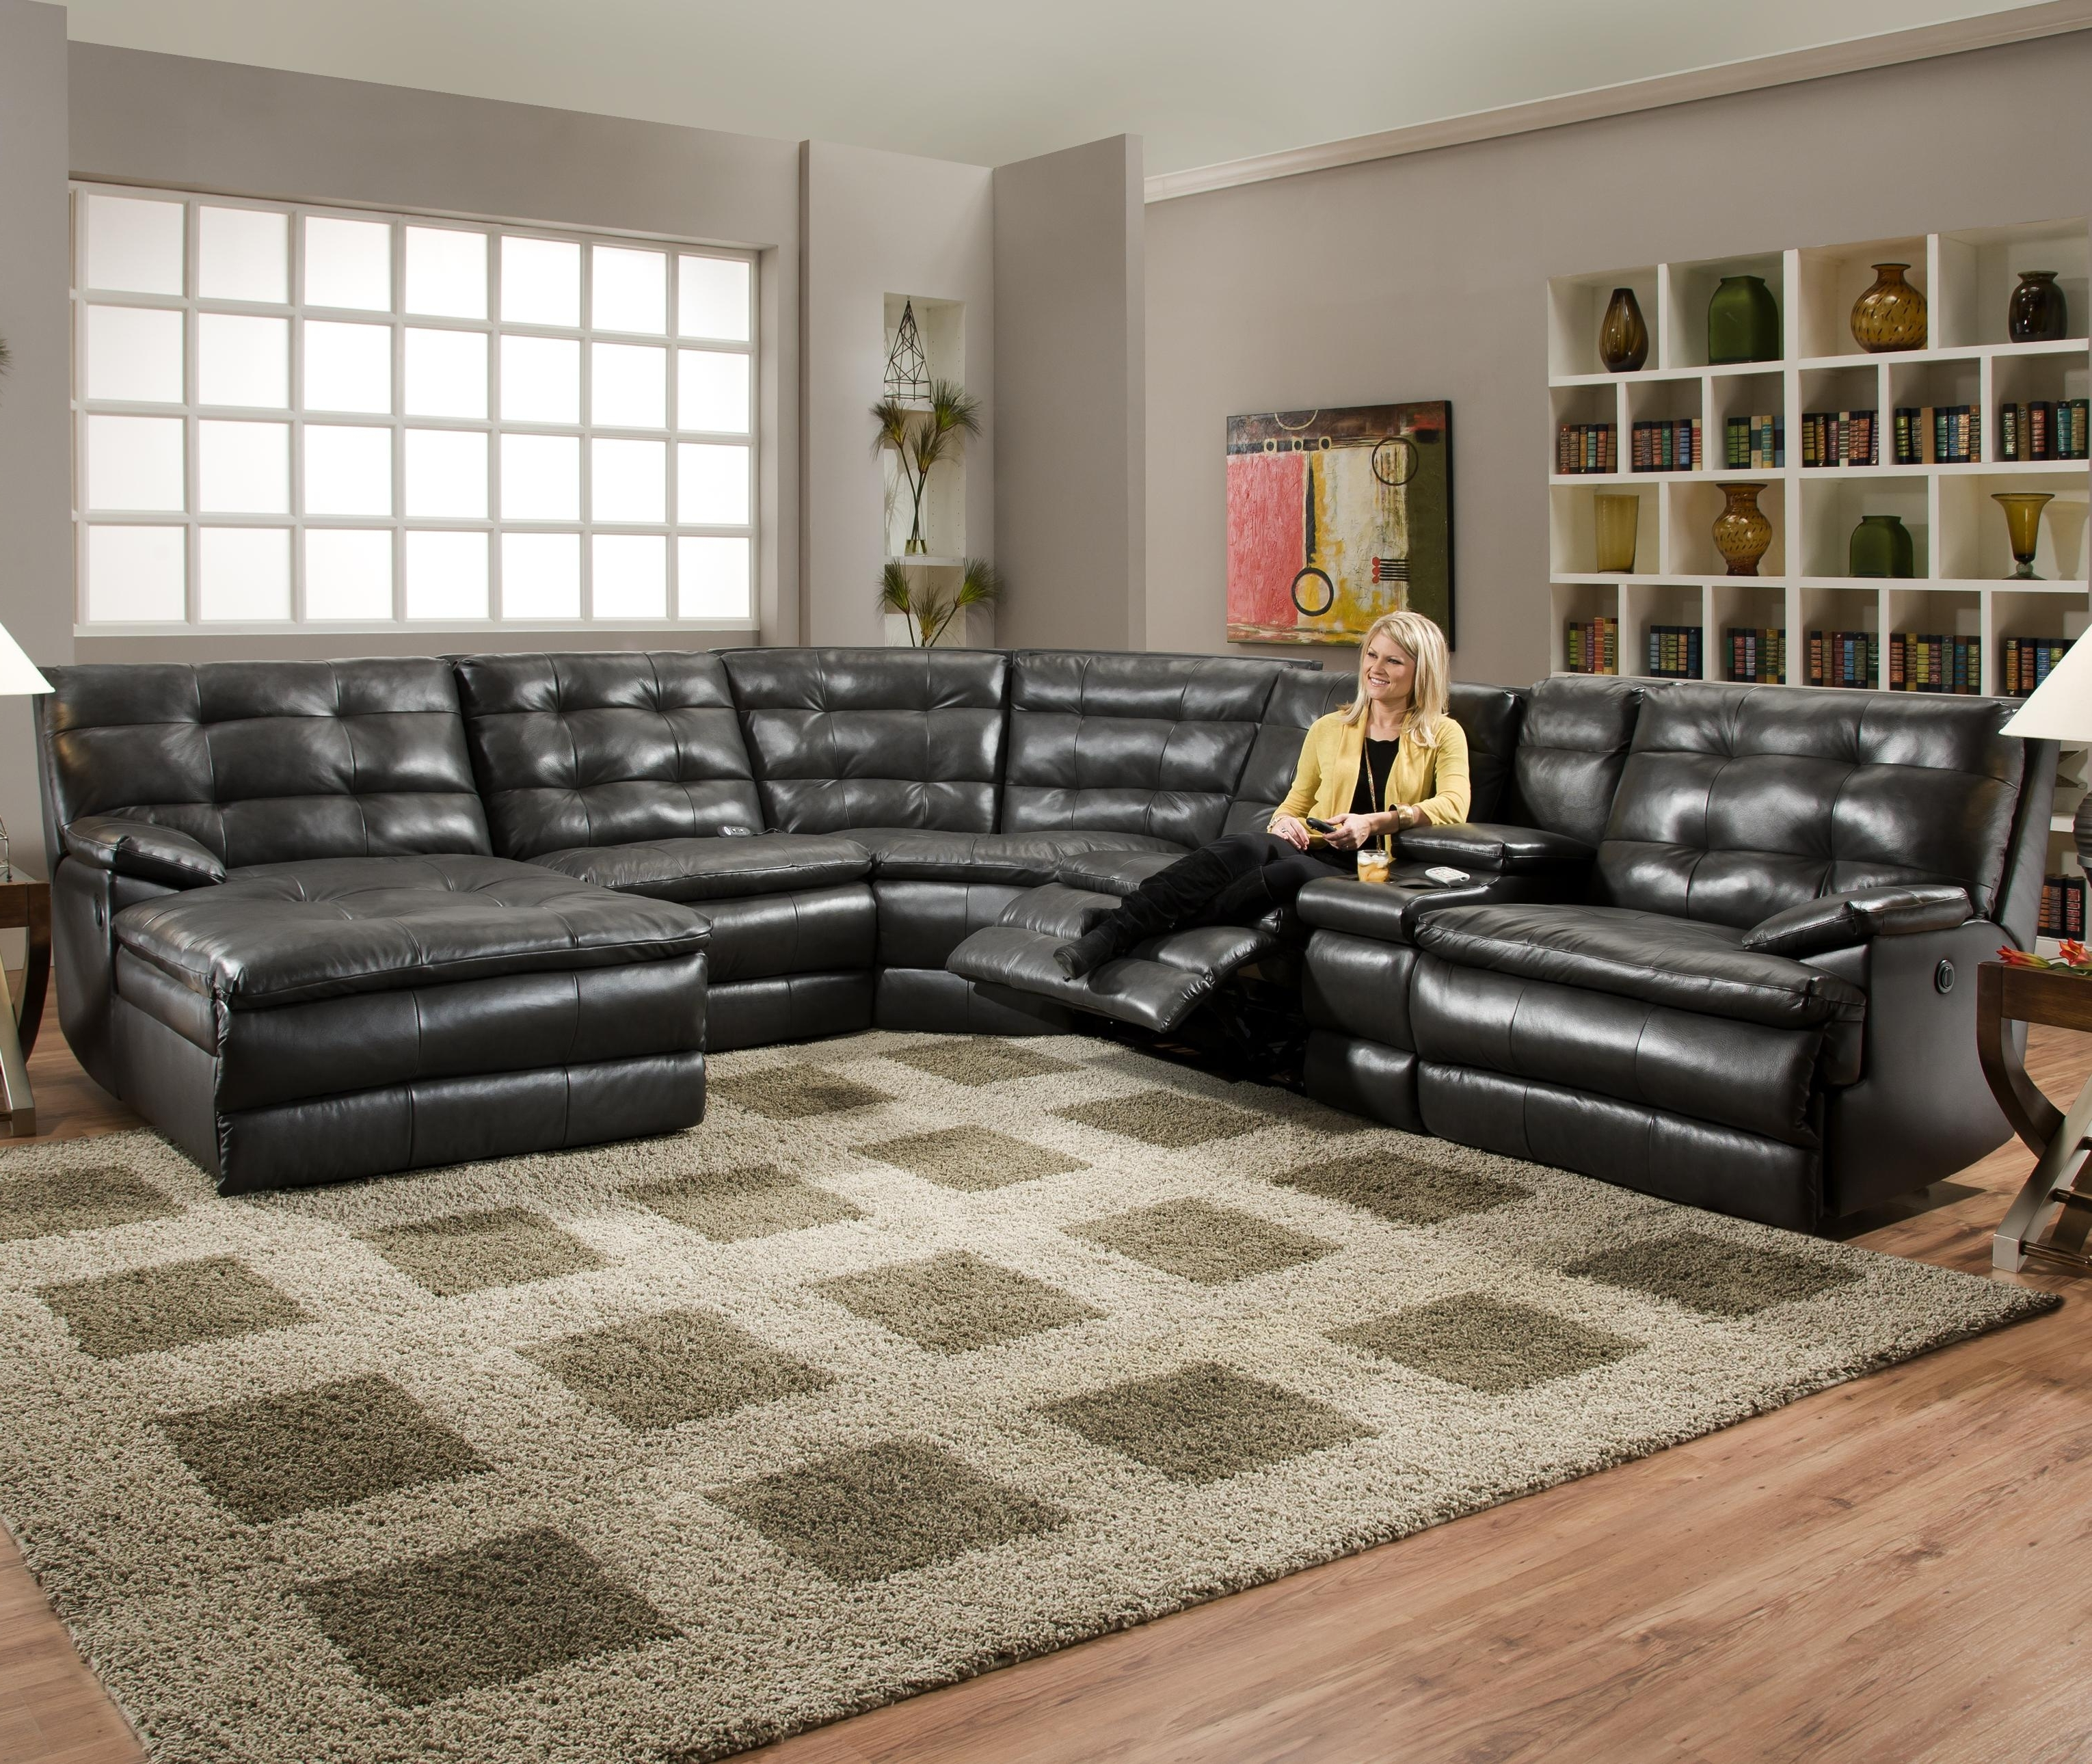 Luxurious Tufted Leather Sectional Sofa In Classy Black Color With Regarding Famous Extra Large Sectional Sofas With Chaise (View 12 of 15)